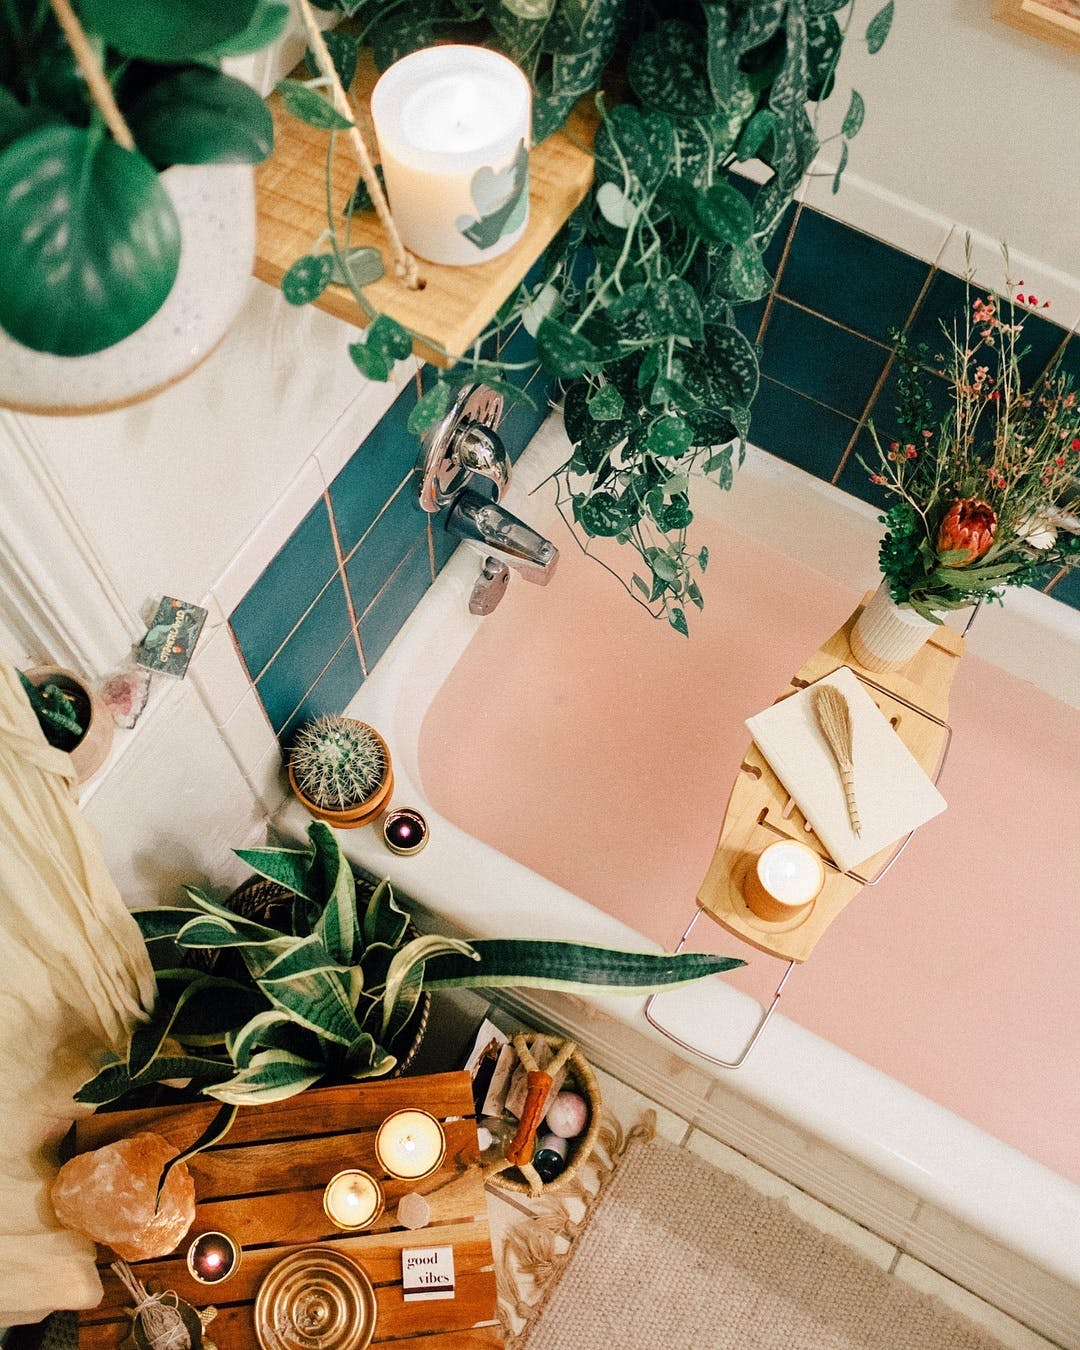 Apologies if this photo is a little hard to make sense of. Its an overhead shot of a bath tub/bathroom. I wanted to include because I love the idea of adorning the bathroom with so many plants.